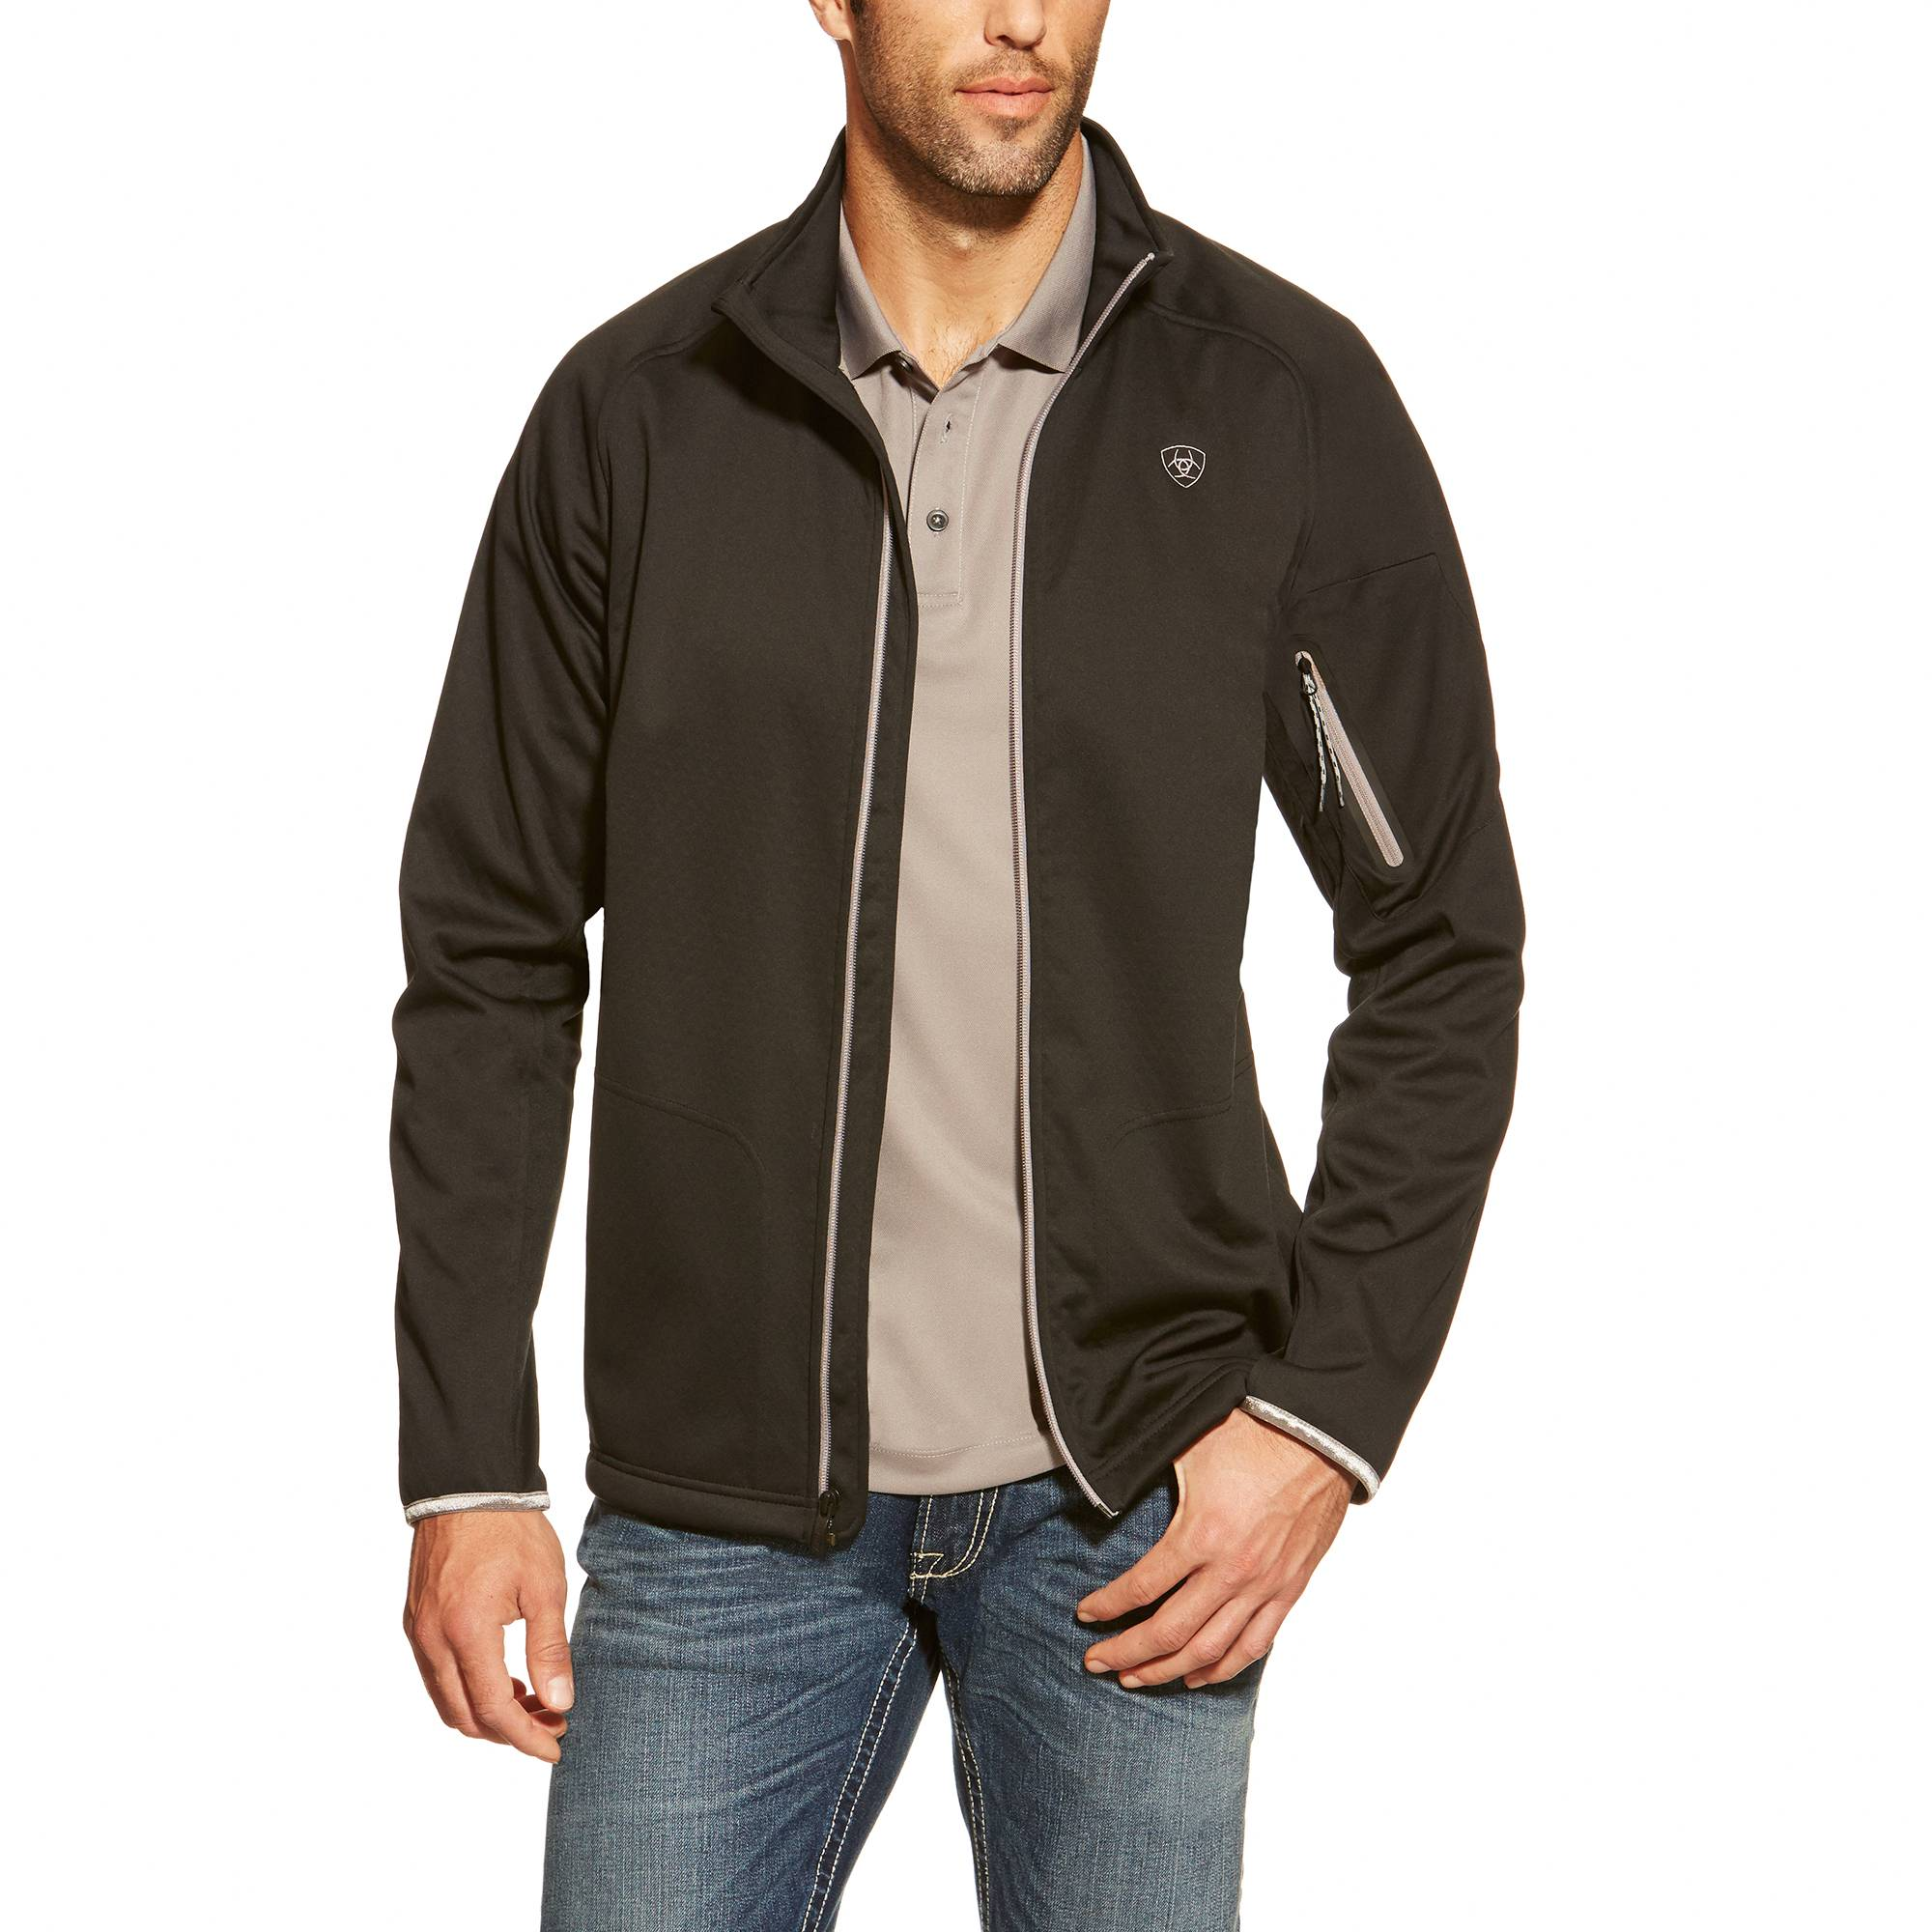 Ariat Saga Full Zip - Mens - Black